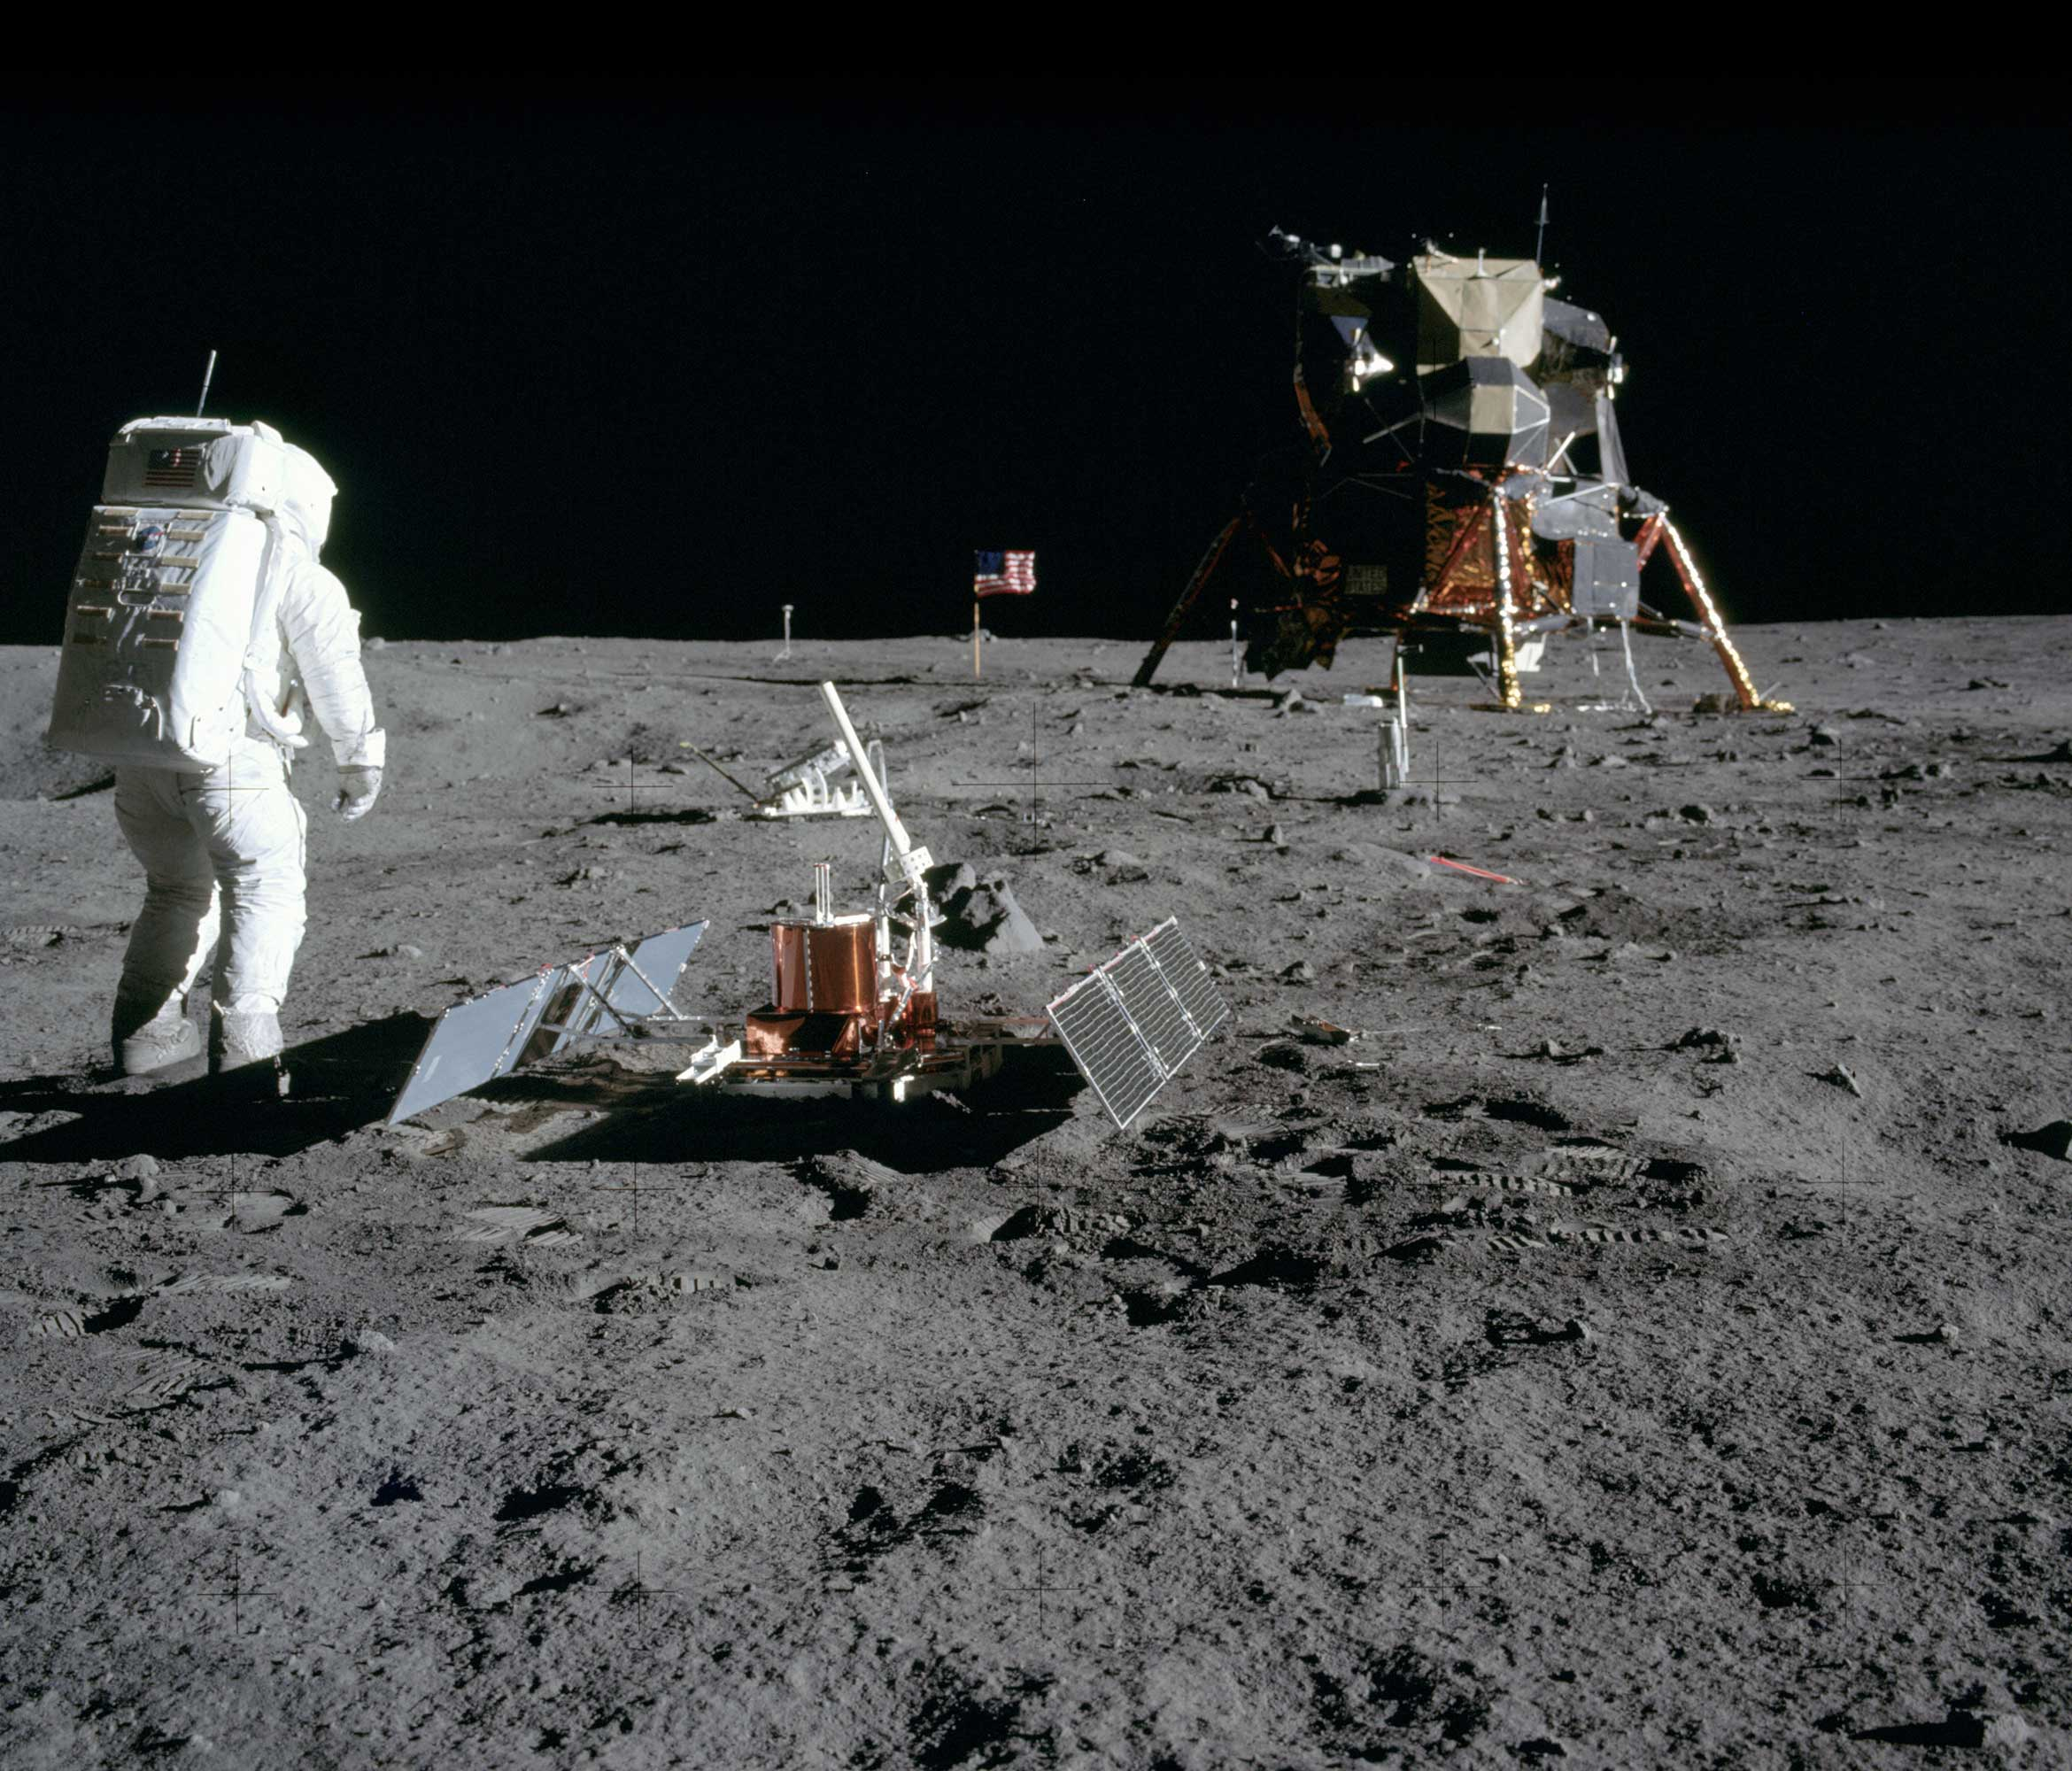 Astronaut Edwin Aldrin after deployment of EASEP on surface of moon